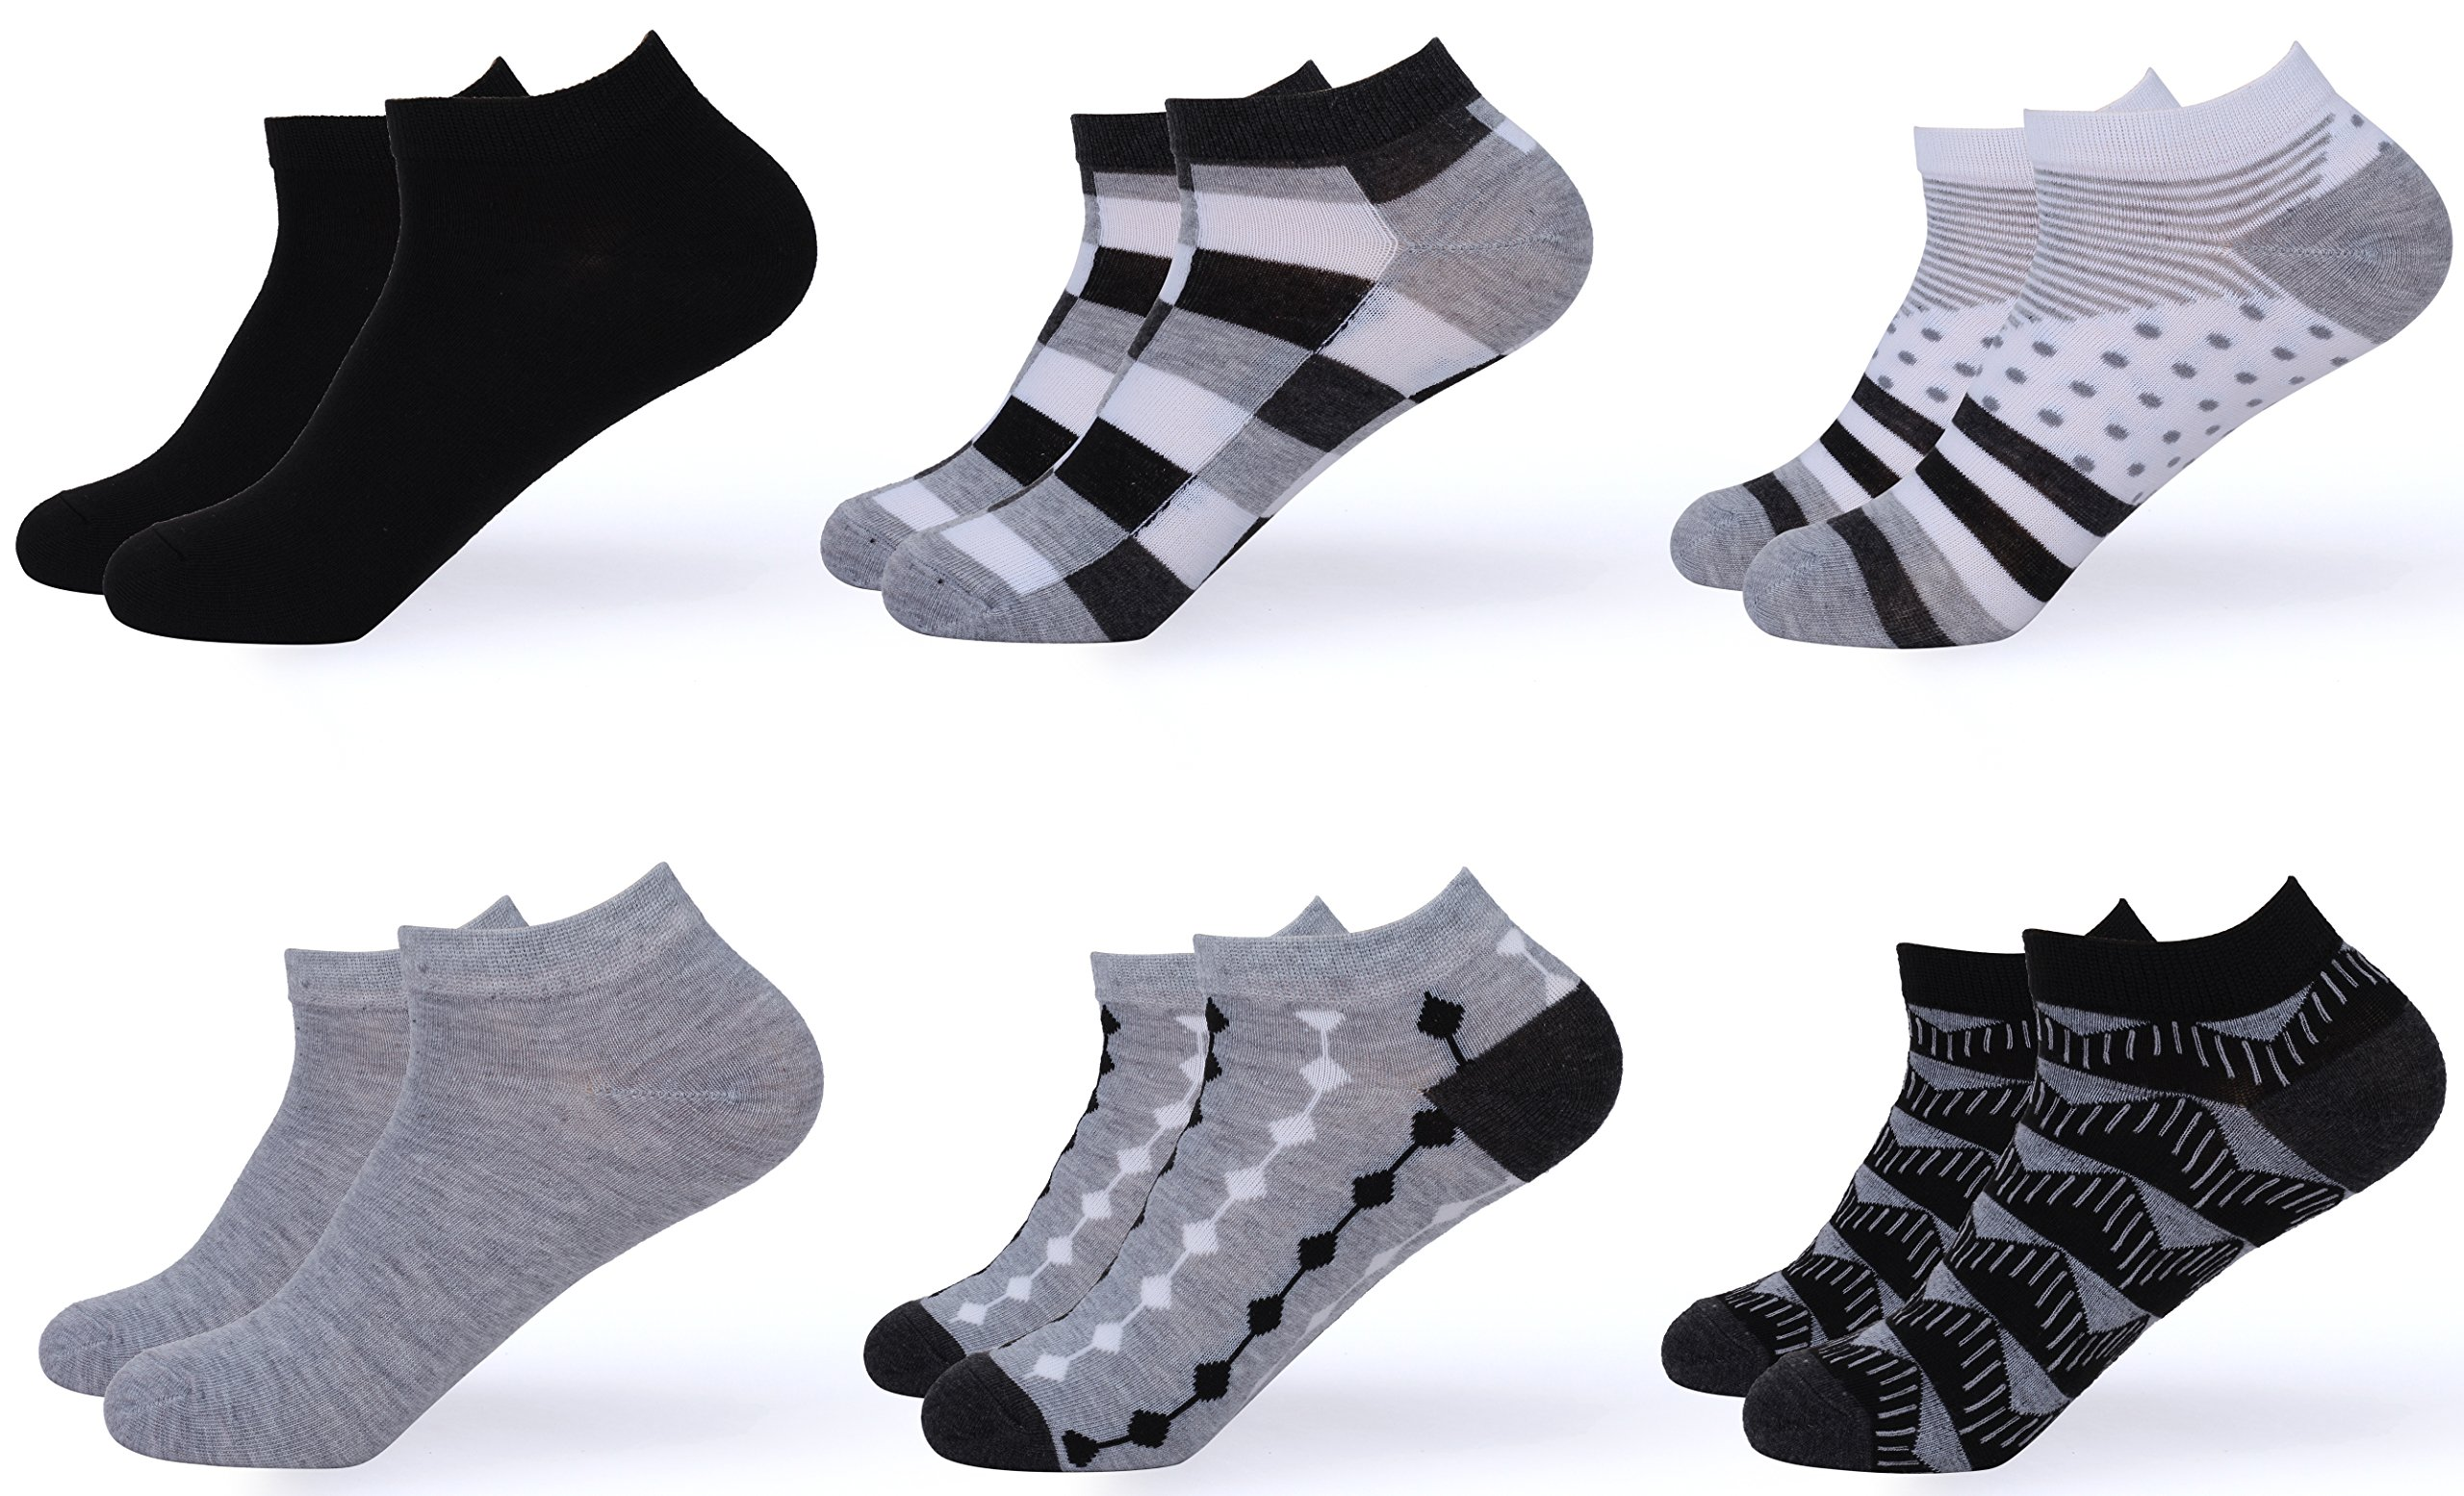 Gallery Seven Women's Ankle Socks - Low Cut Colorful Socks For Women - Size 9-11 - 6 Pack - Style 7